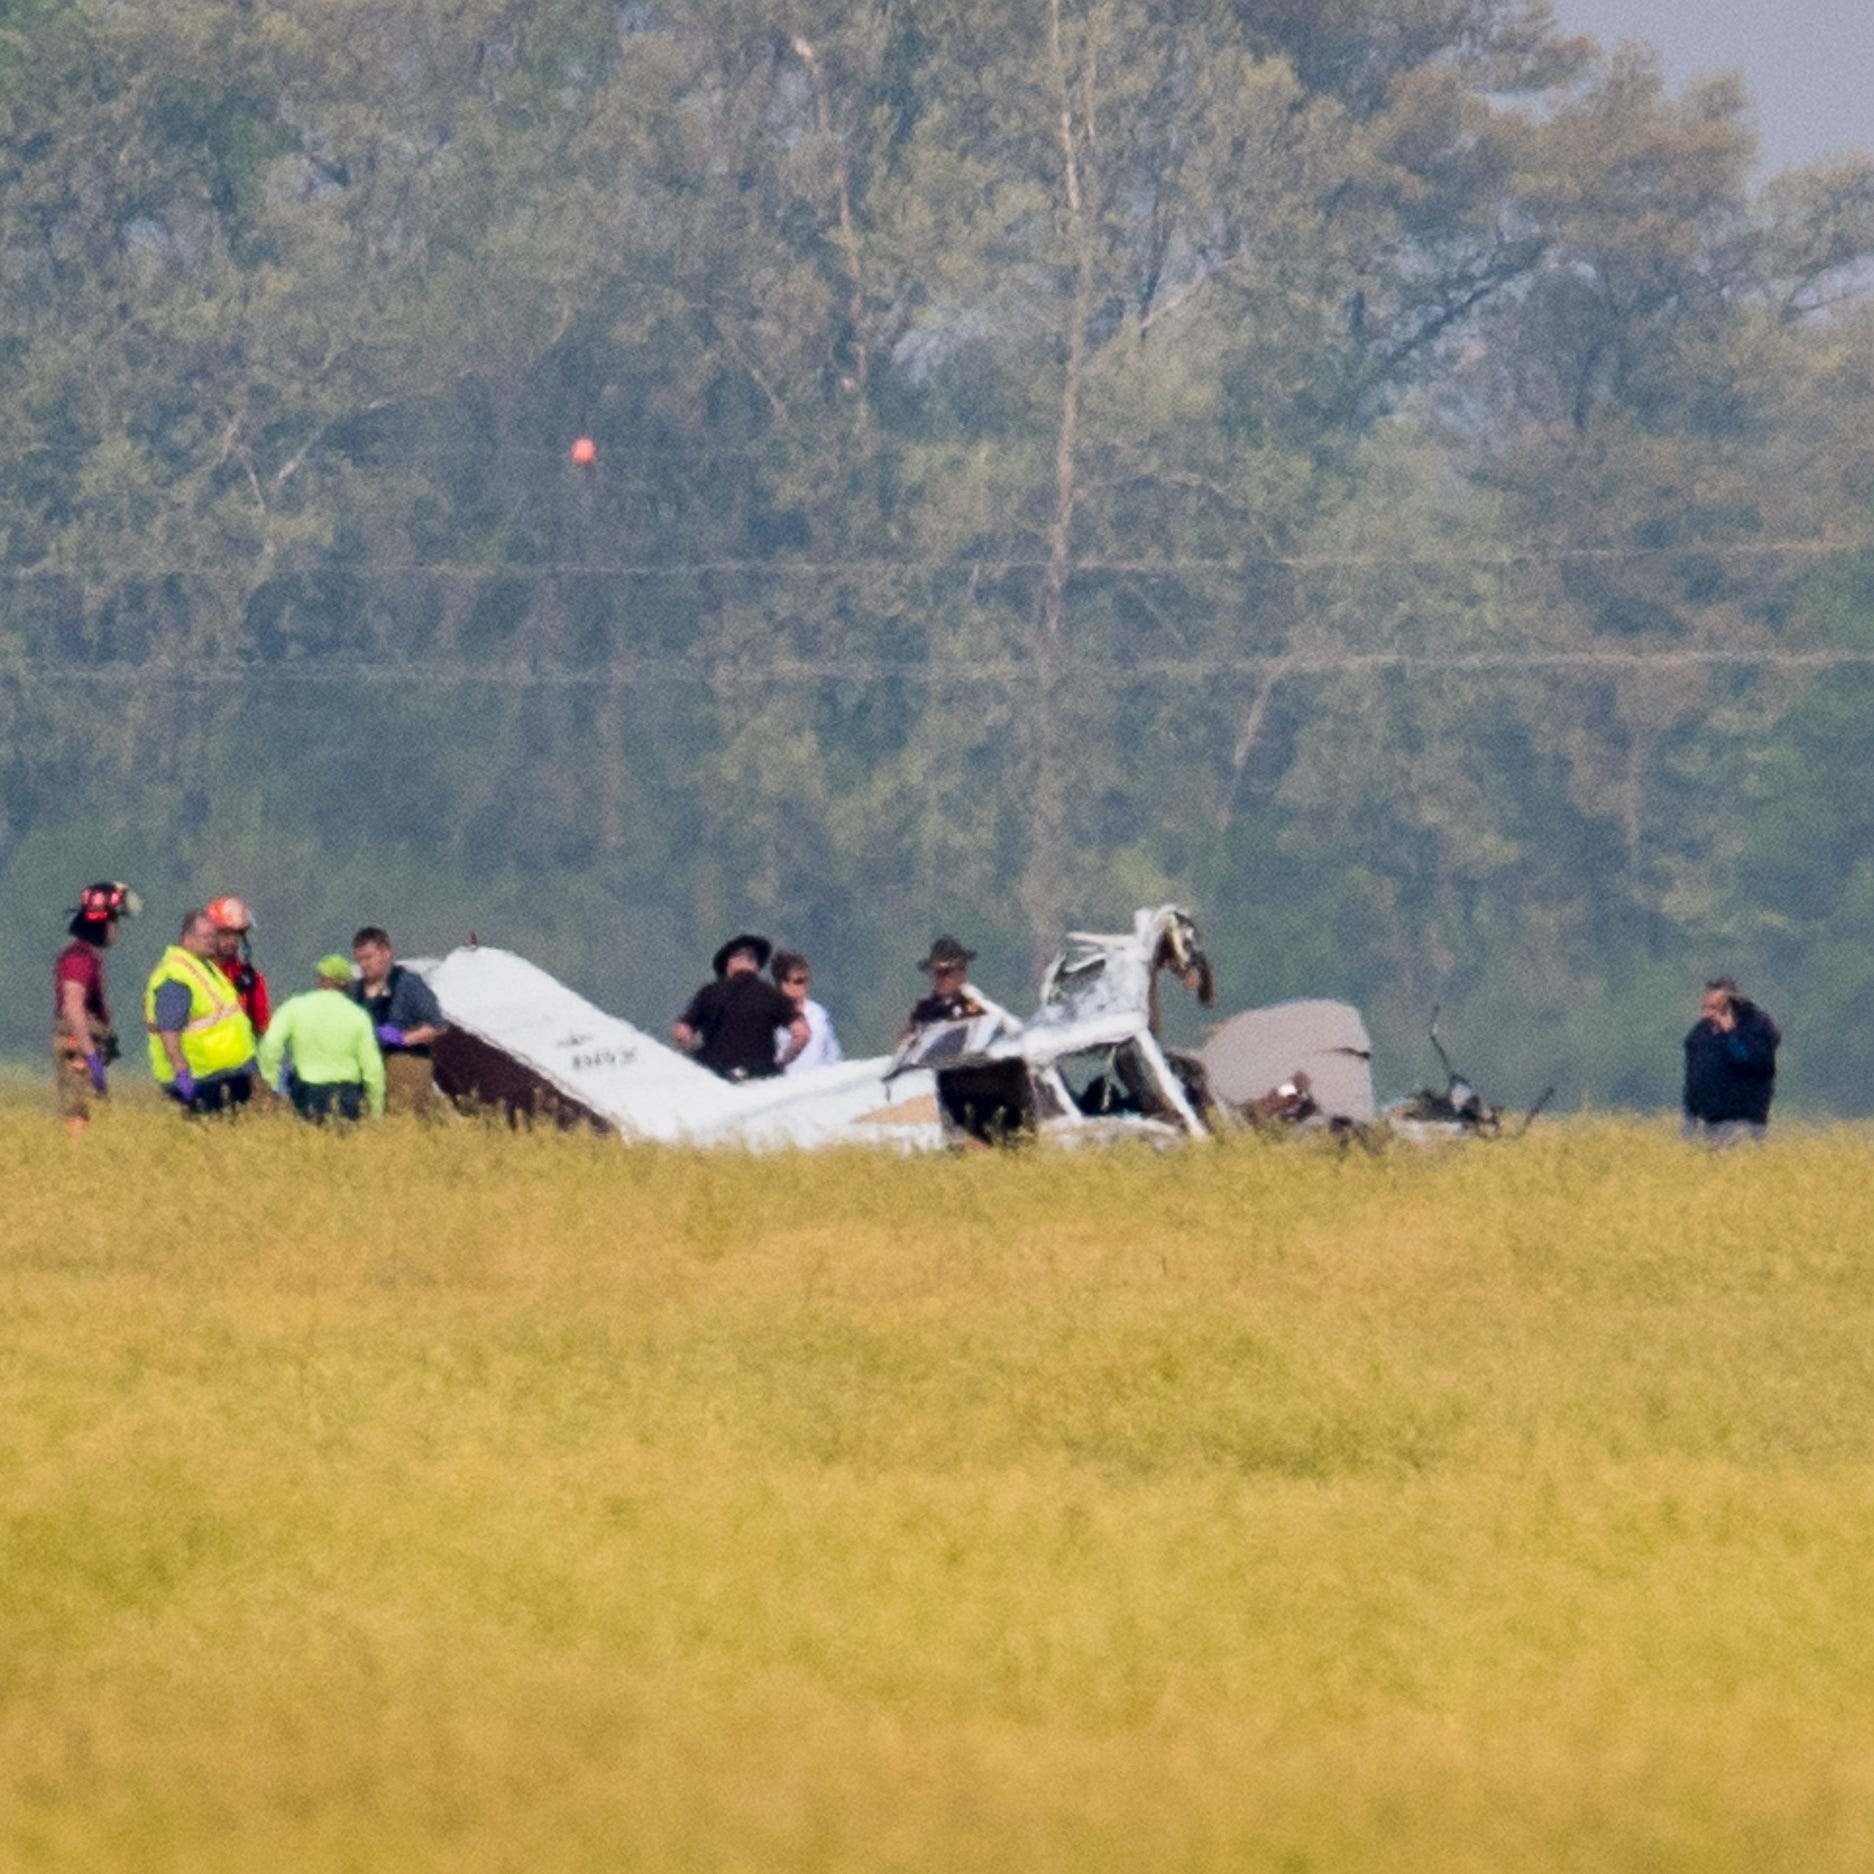 Federal report on Henderson plane crash notes fuel status, pilot experience